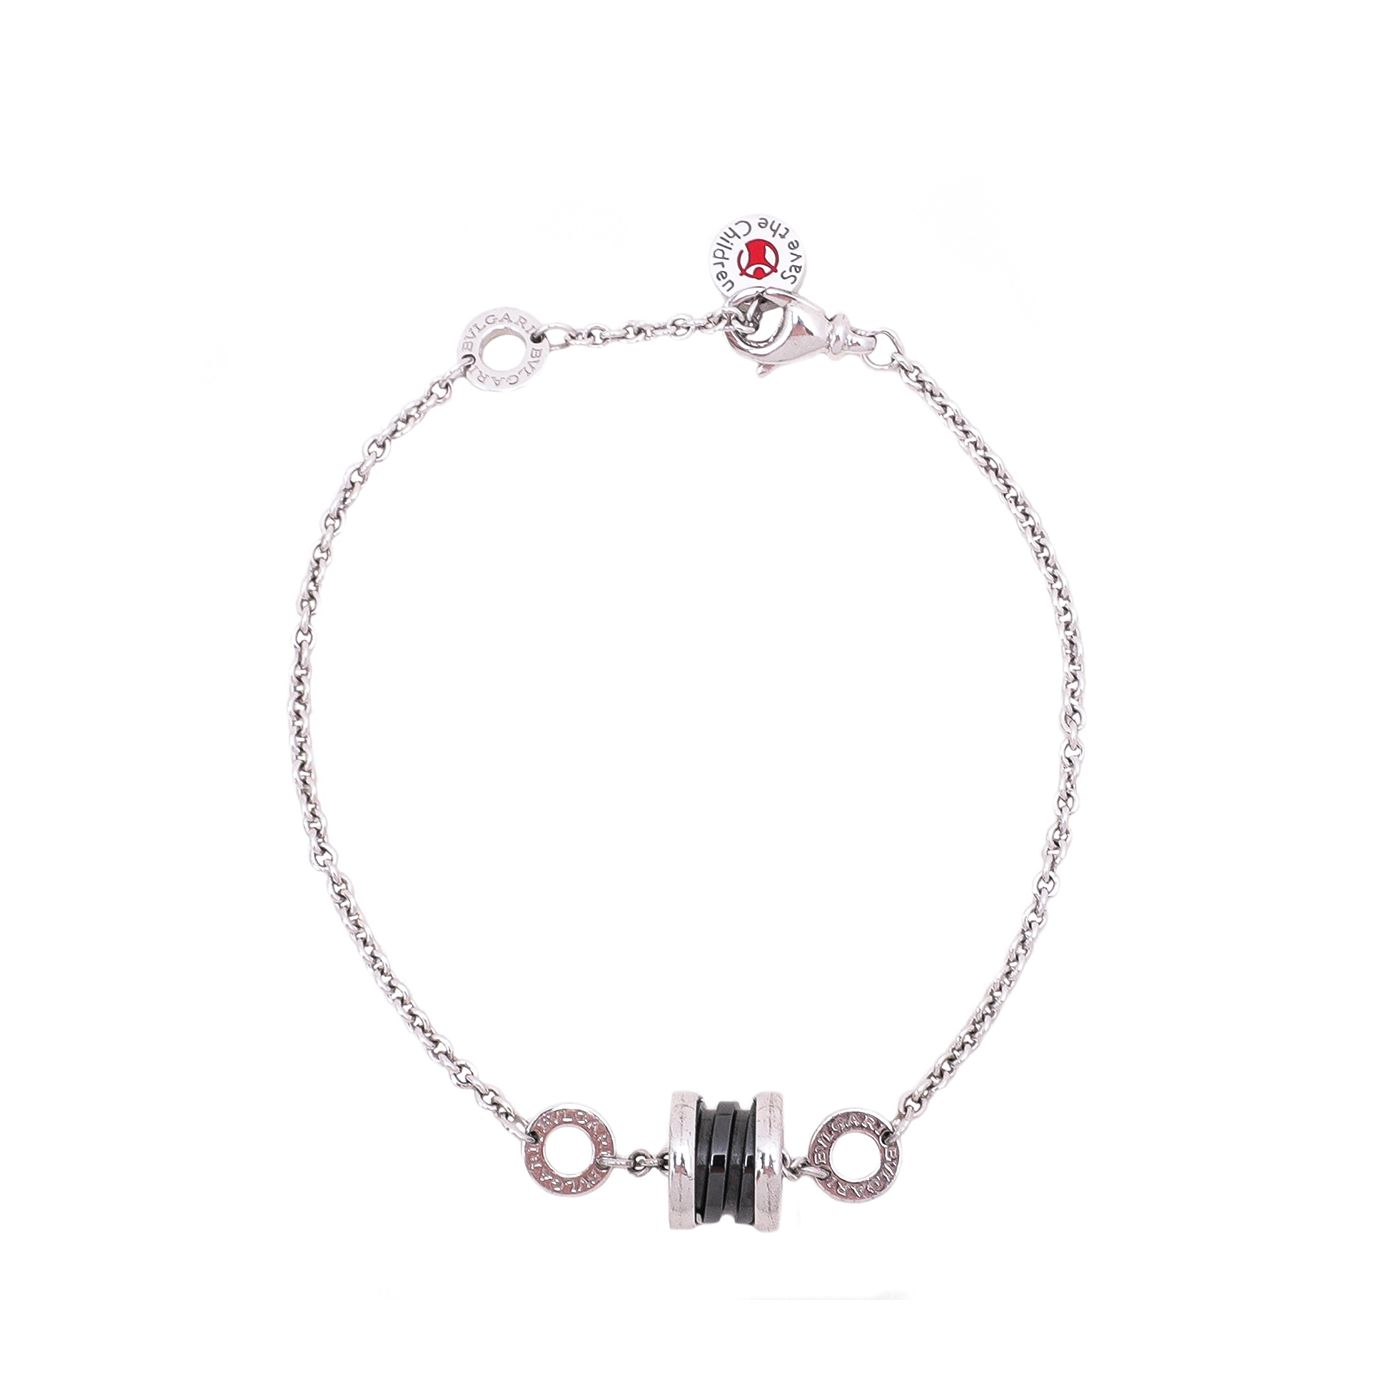 Bvlgari Save The Children Bracelet